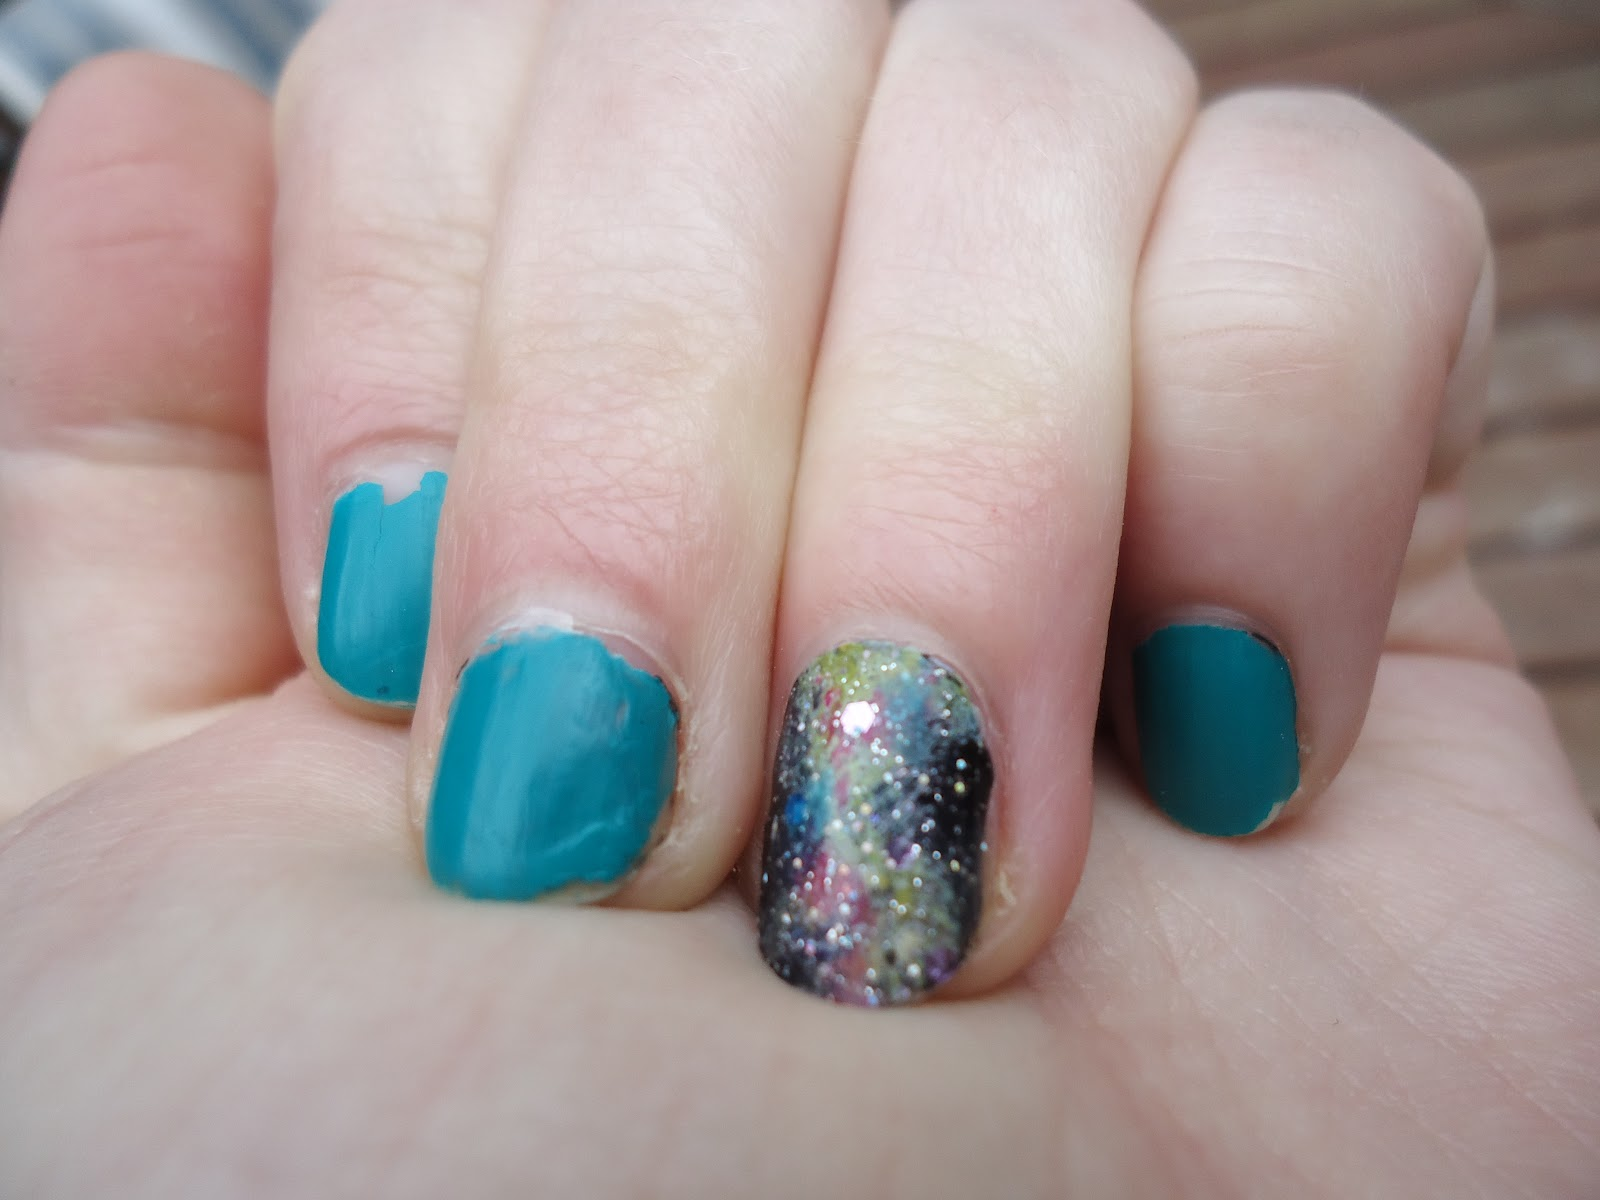 Nails that light up